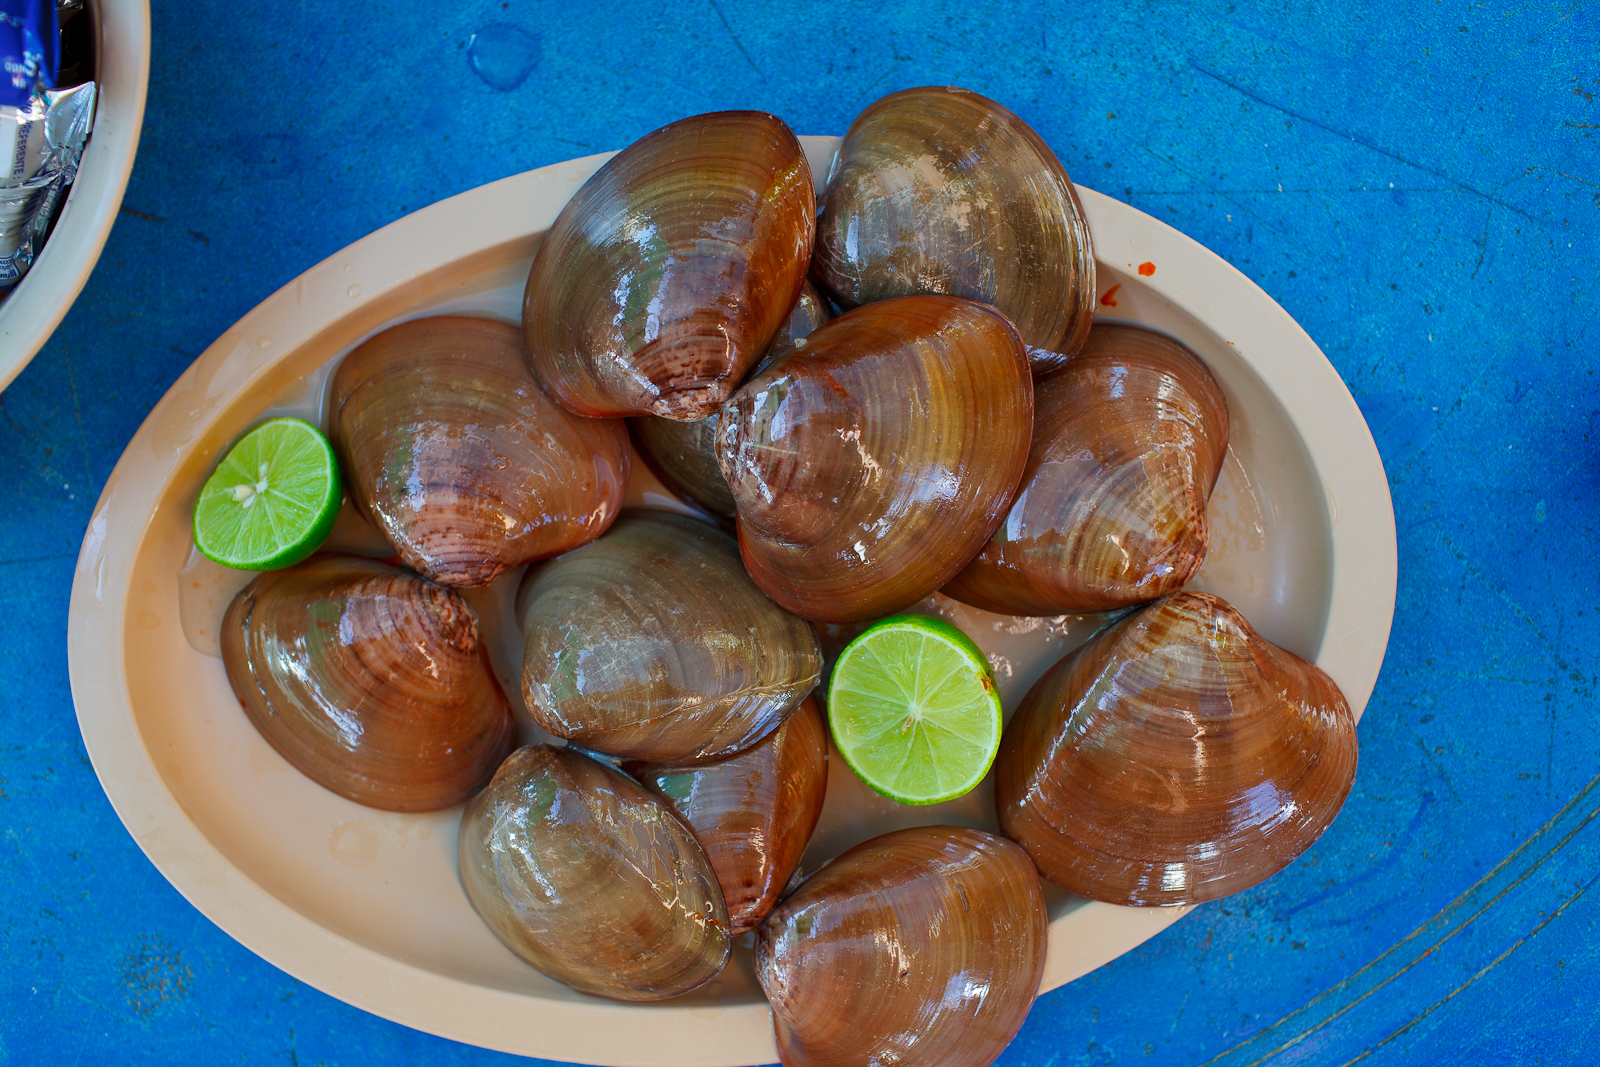 Plate of chocolate clams